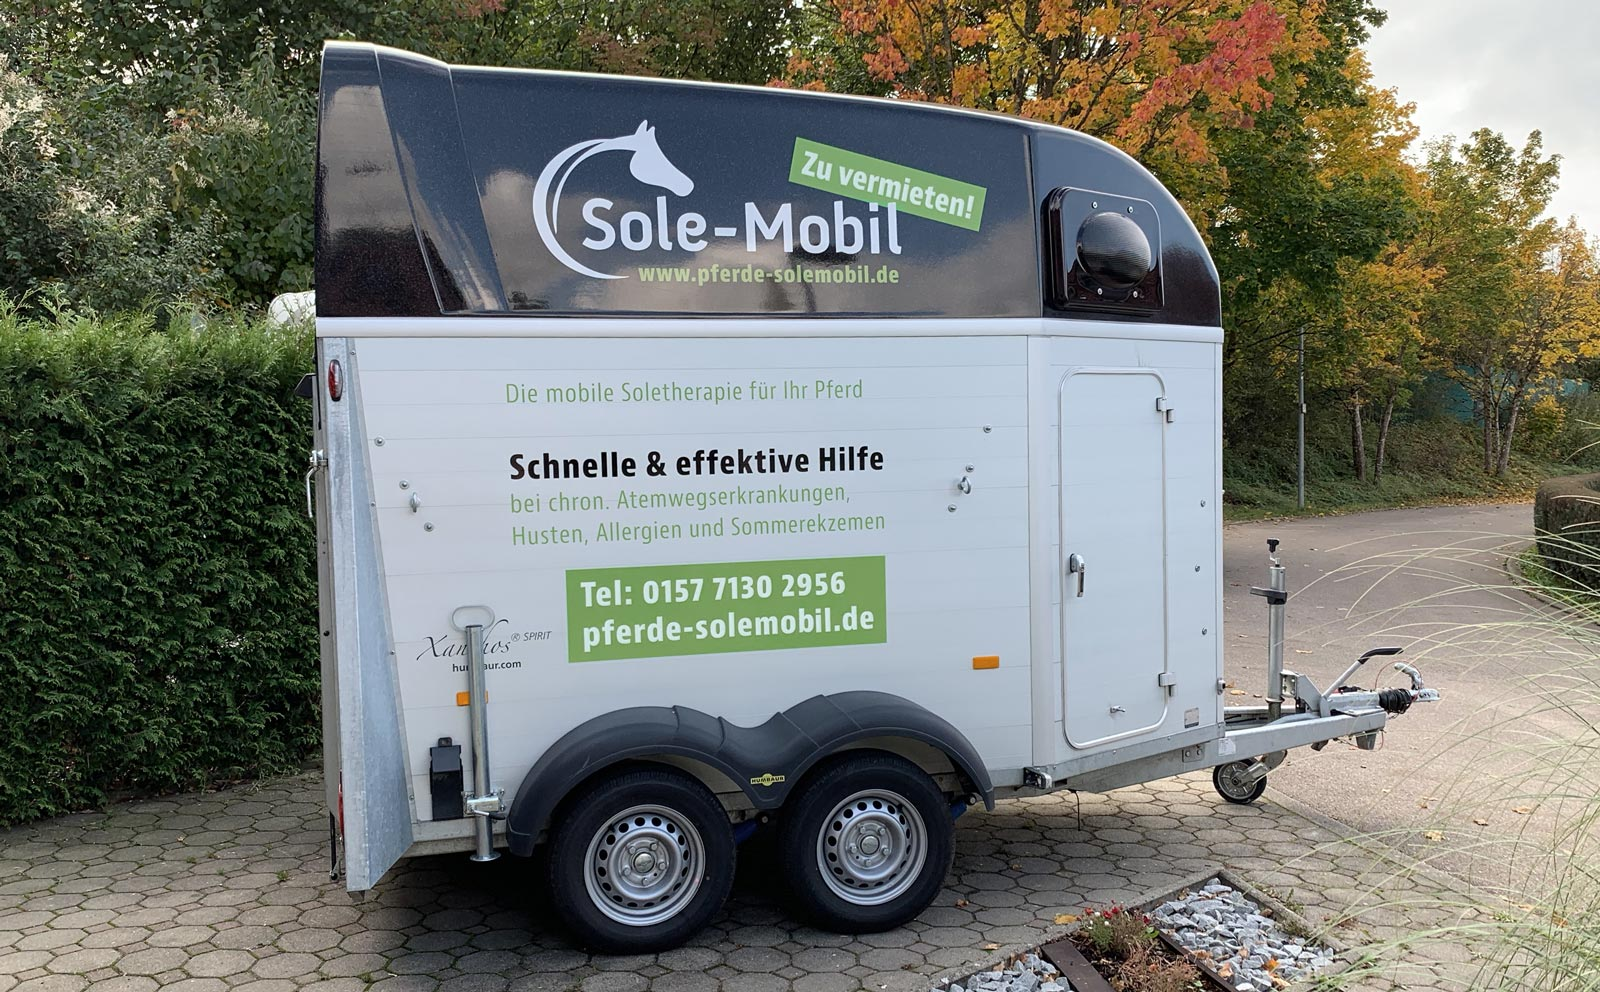 Sole-Mobil